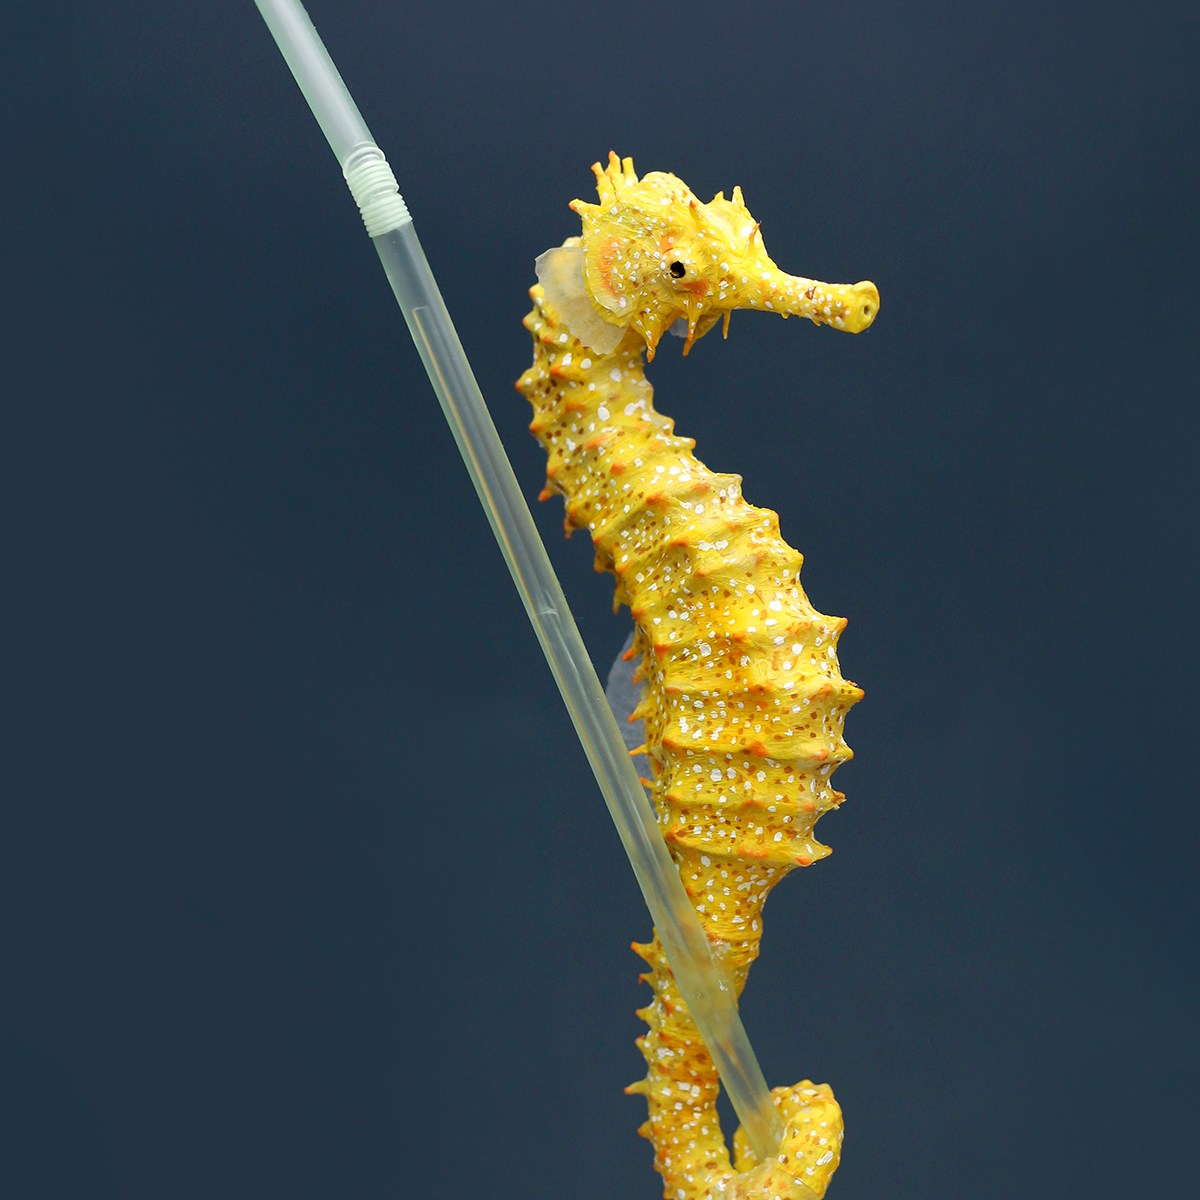 Seahorse holding on to plastic straw